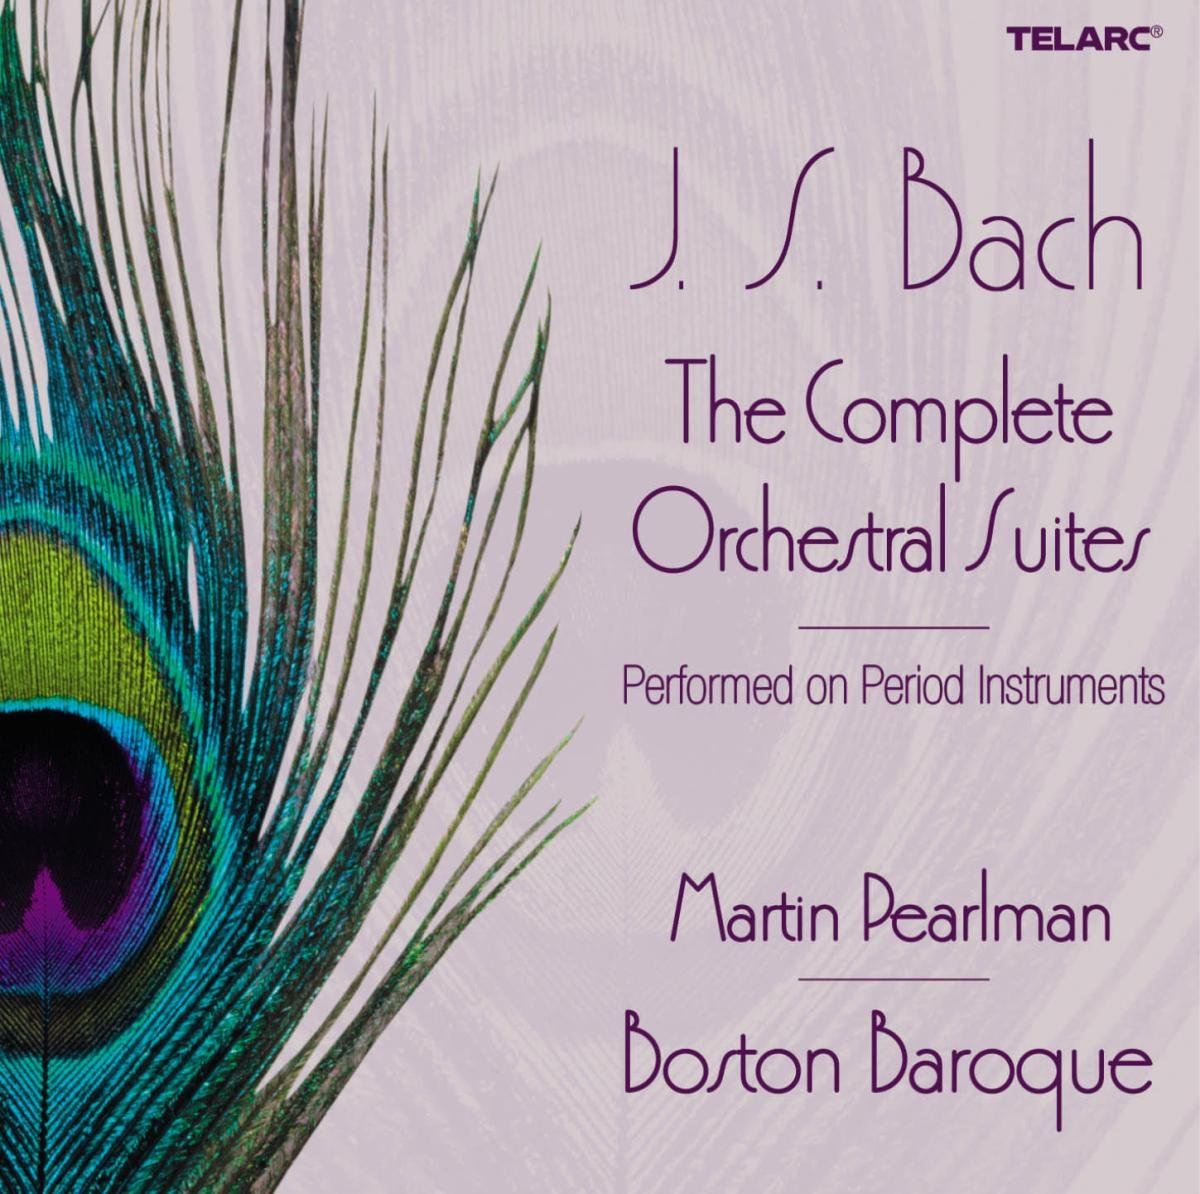 Bach: Complete Orchestral Suites by Telarc